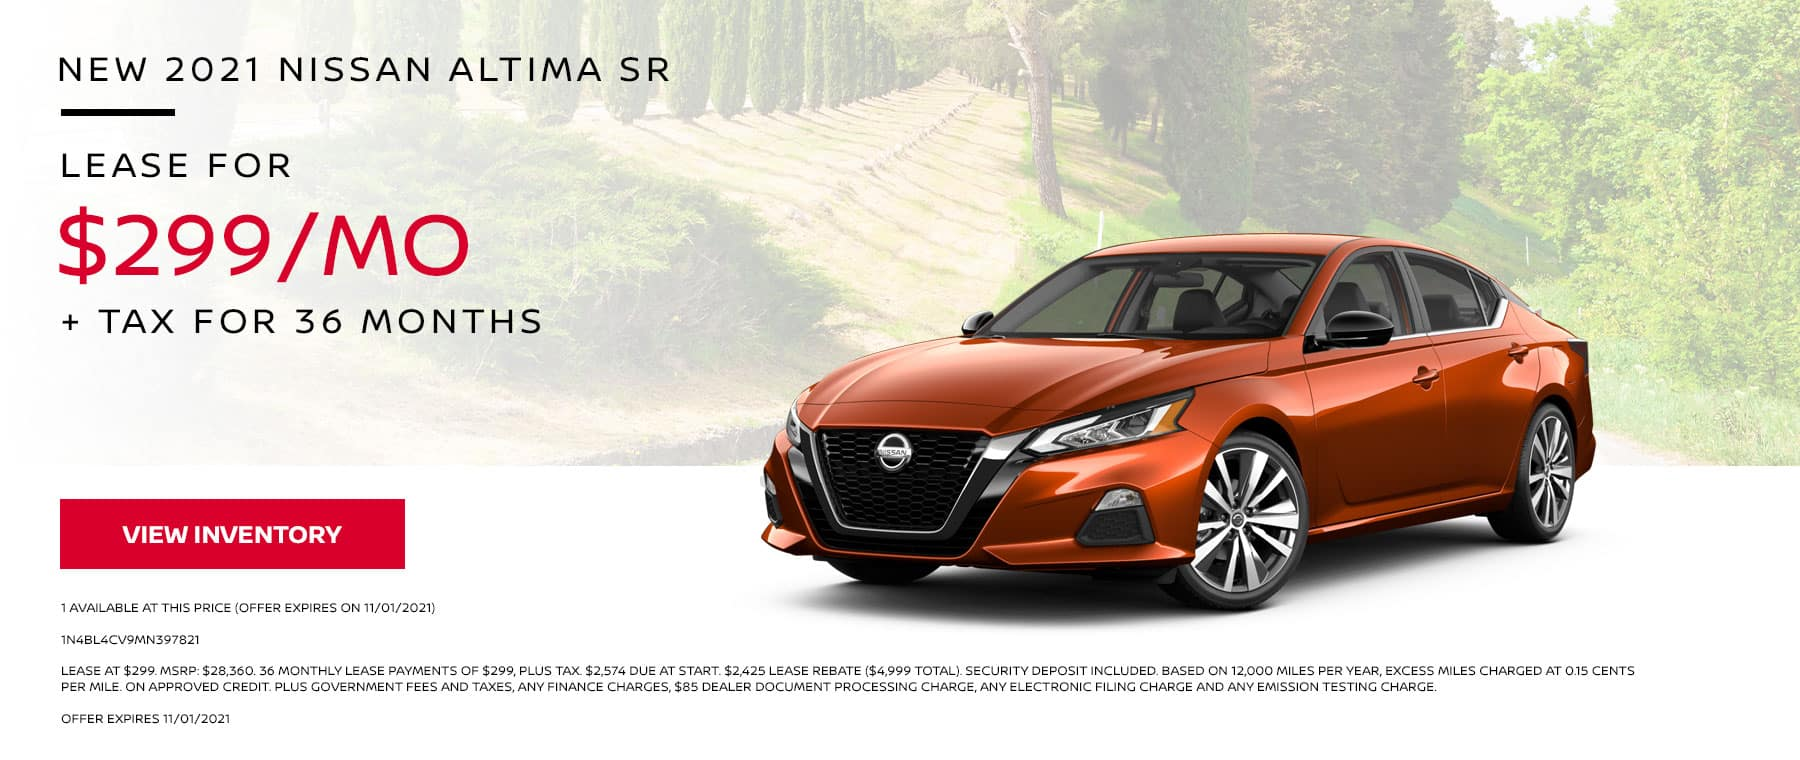 New 2021 Nissan Altima SR. Lease for $299 per Month + Tax for 36 Months